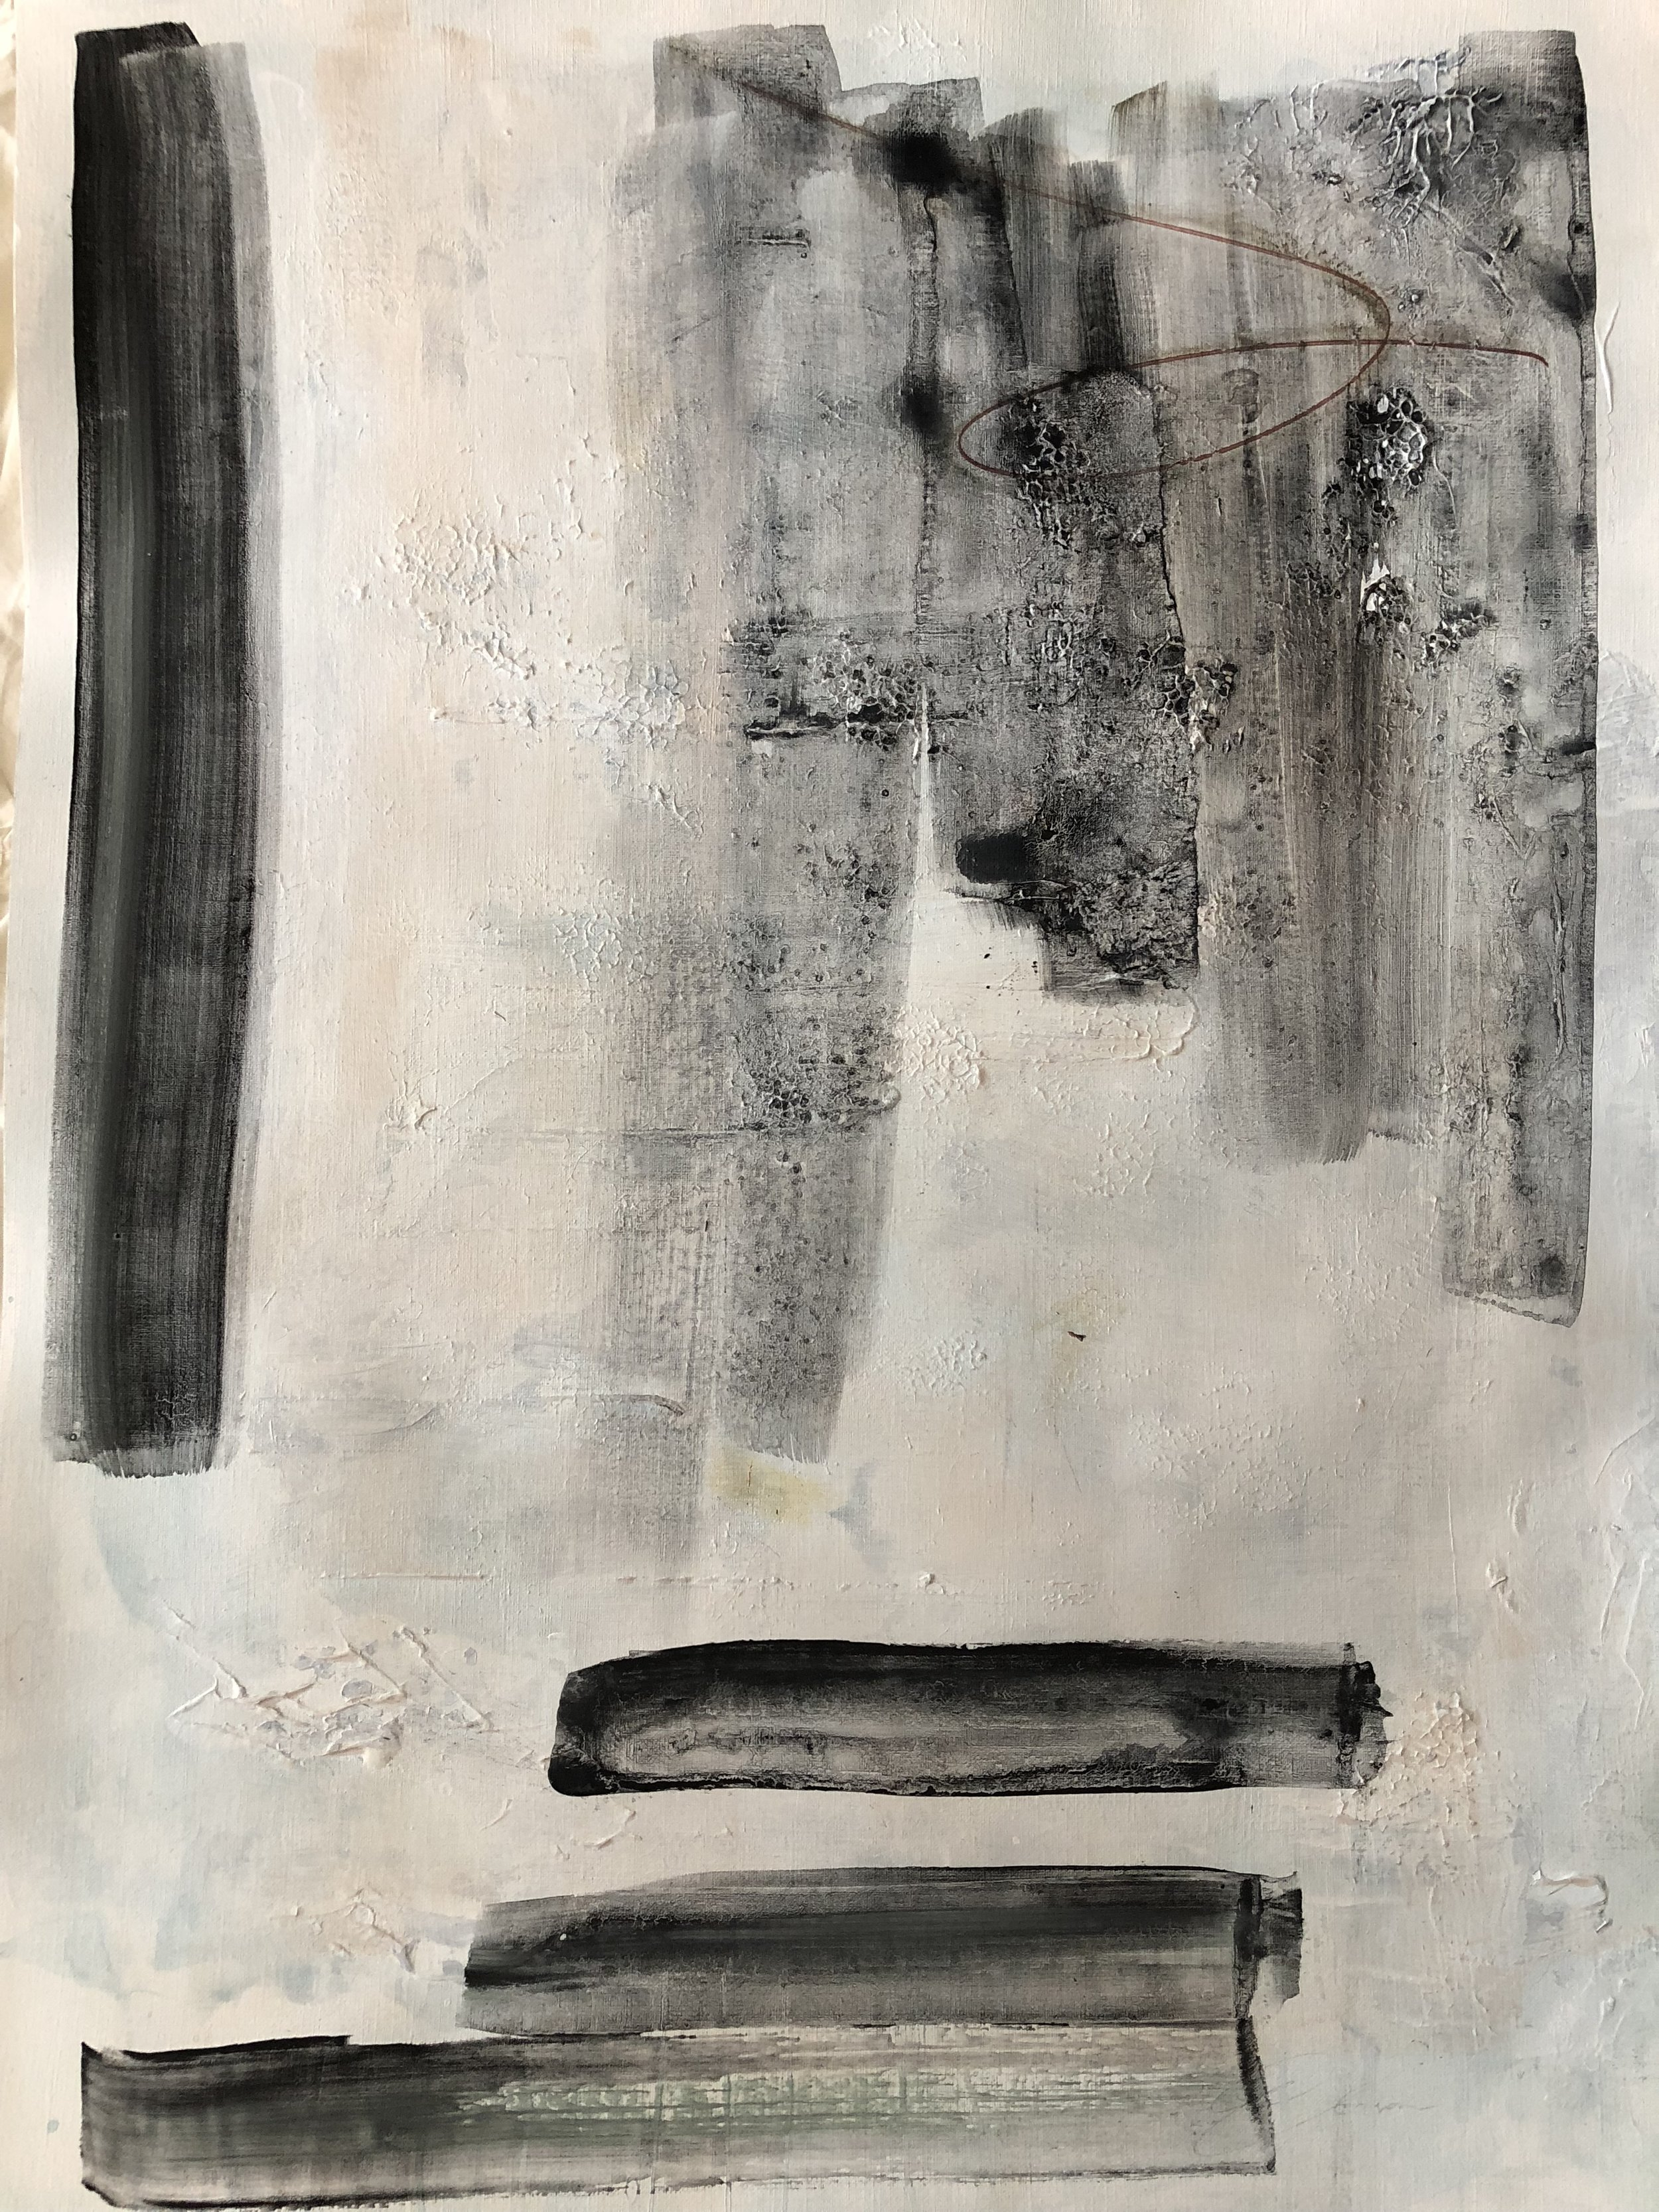 SOLD - REMODELING IMIXED MEDIA ON PAPER 18 X 24